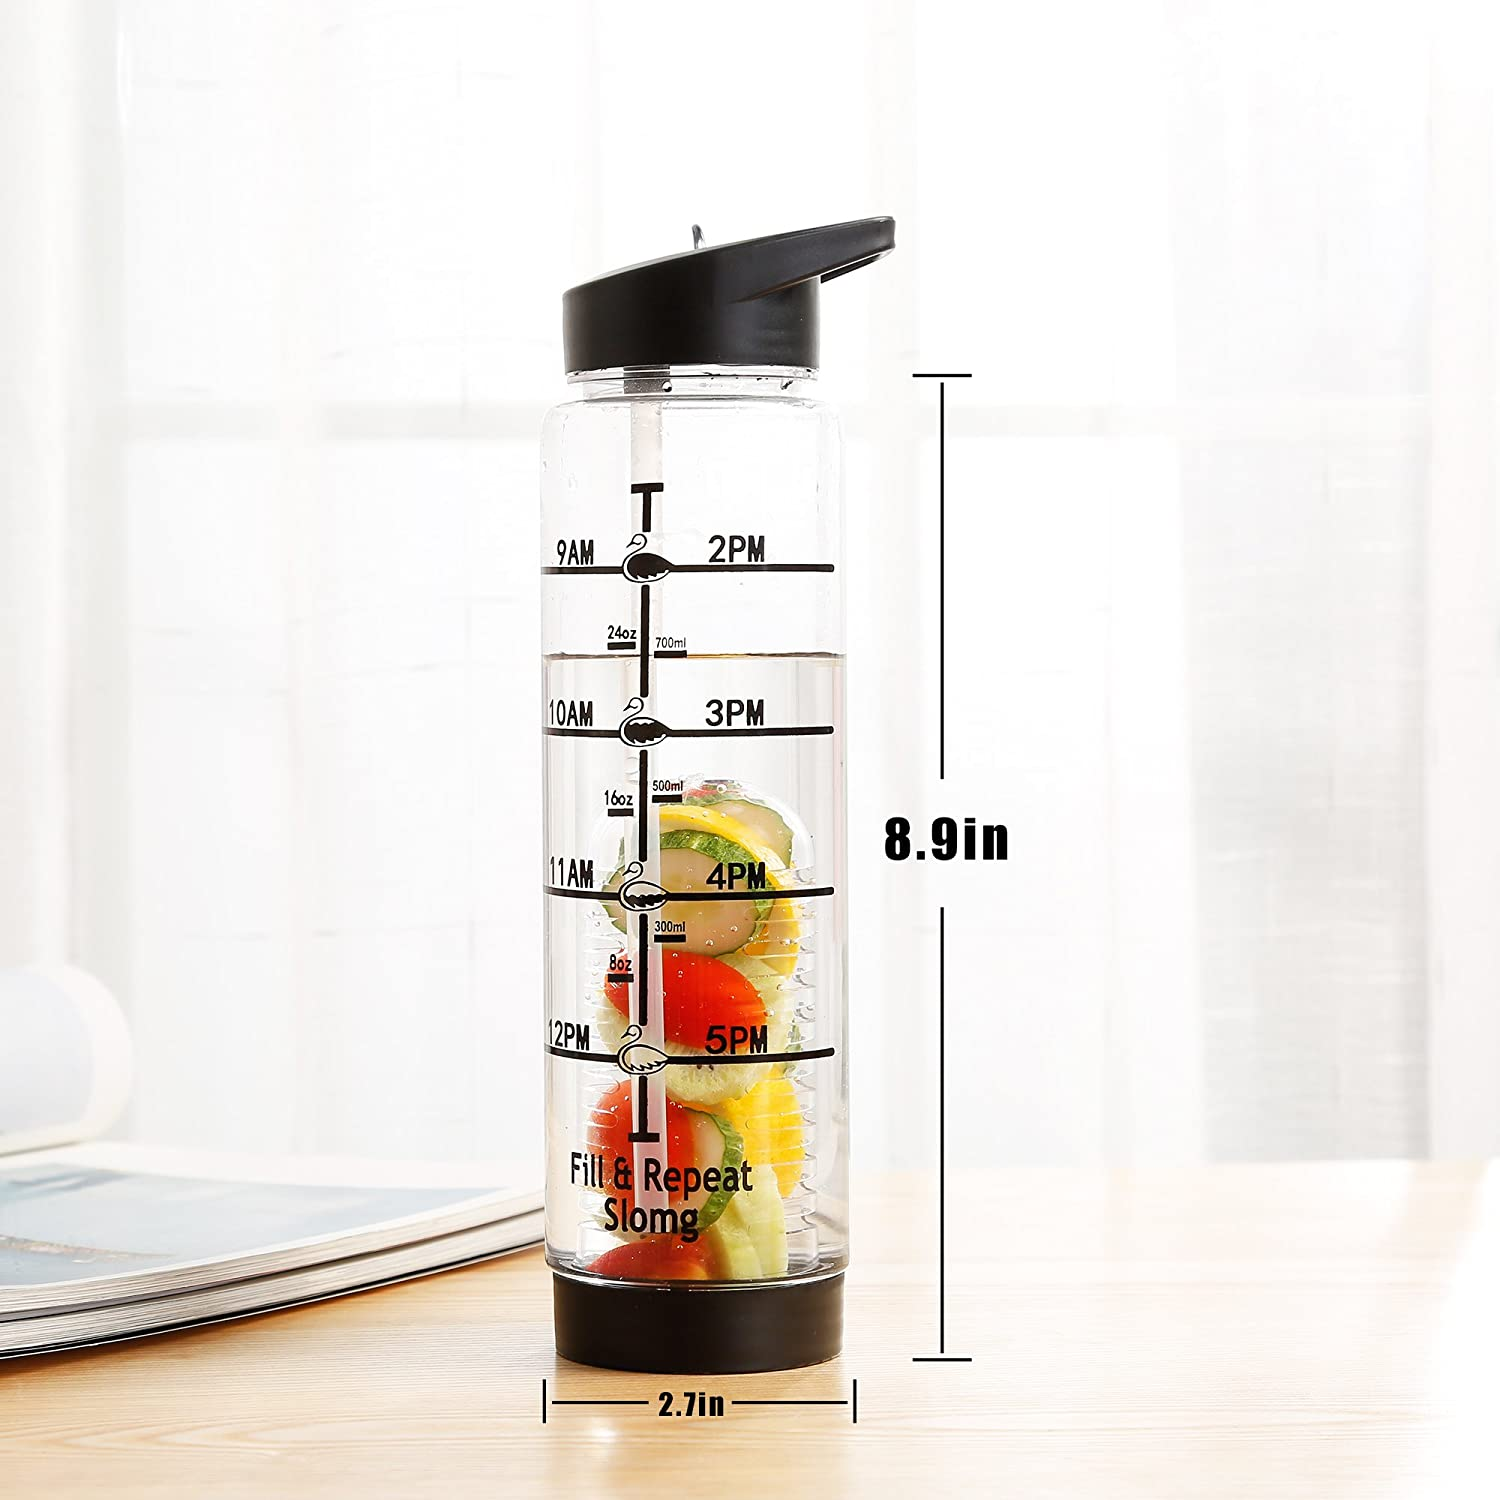 Office Detox Infuser Tritan Drinking Bottle Black Slomg Large Infused Fruit Water Infusion Bottles Time Markings BPA Free Leak Proof Sport Travel Water Bottle with Measurements 32oz Straw Water Bottles